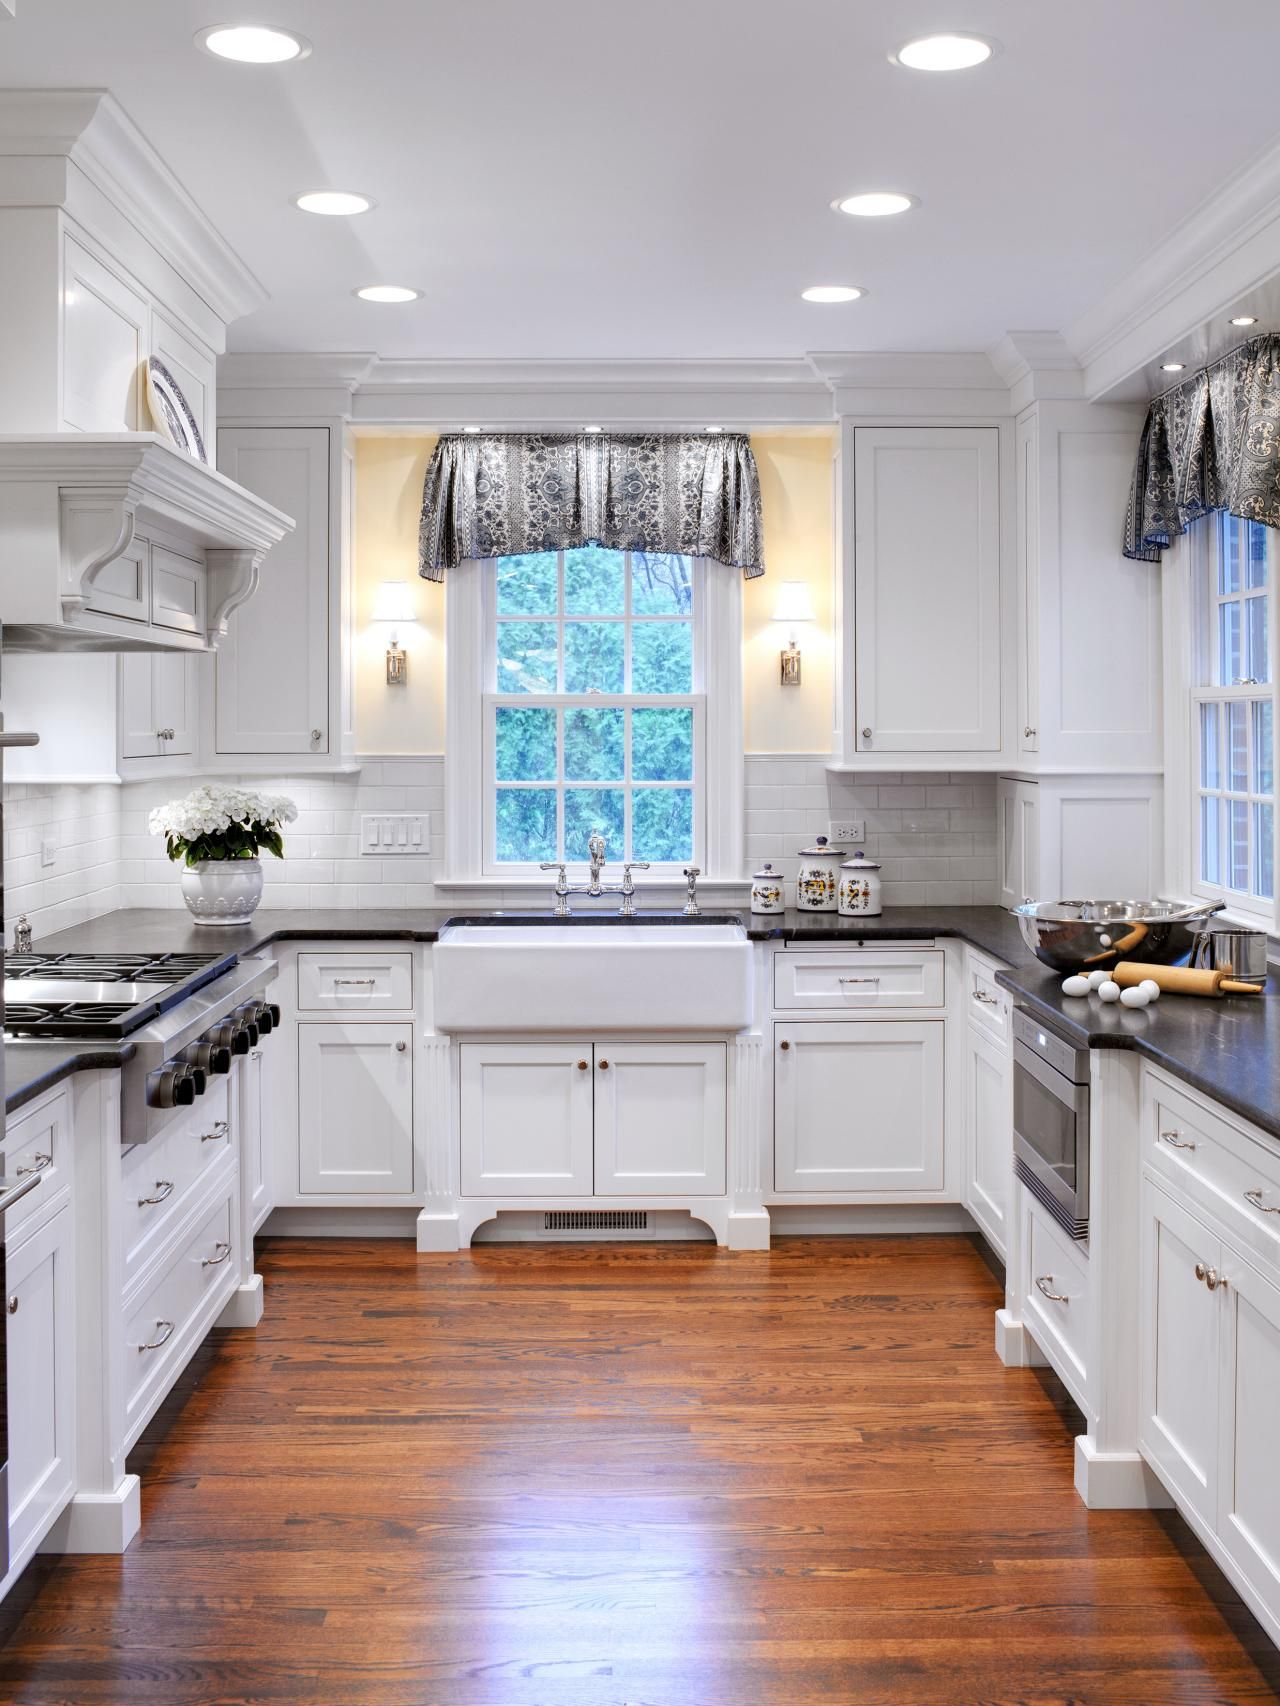 Kitchen Window Pictures: The Best Options, Styles & Ideas | Hgtv ...